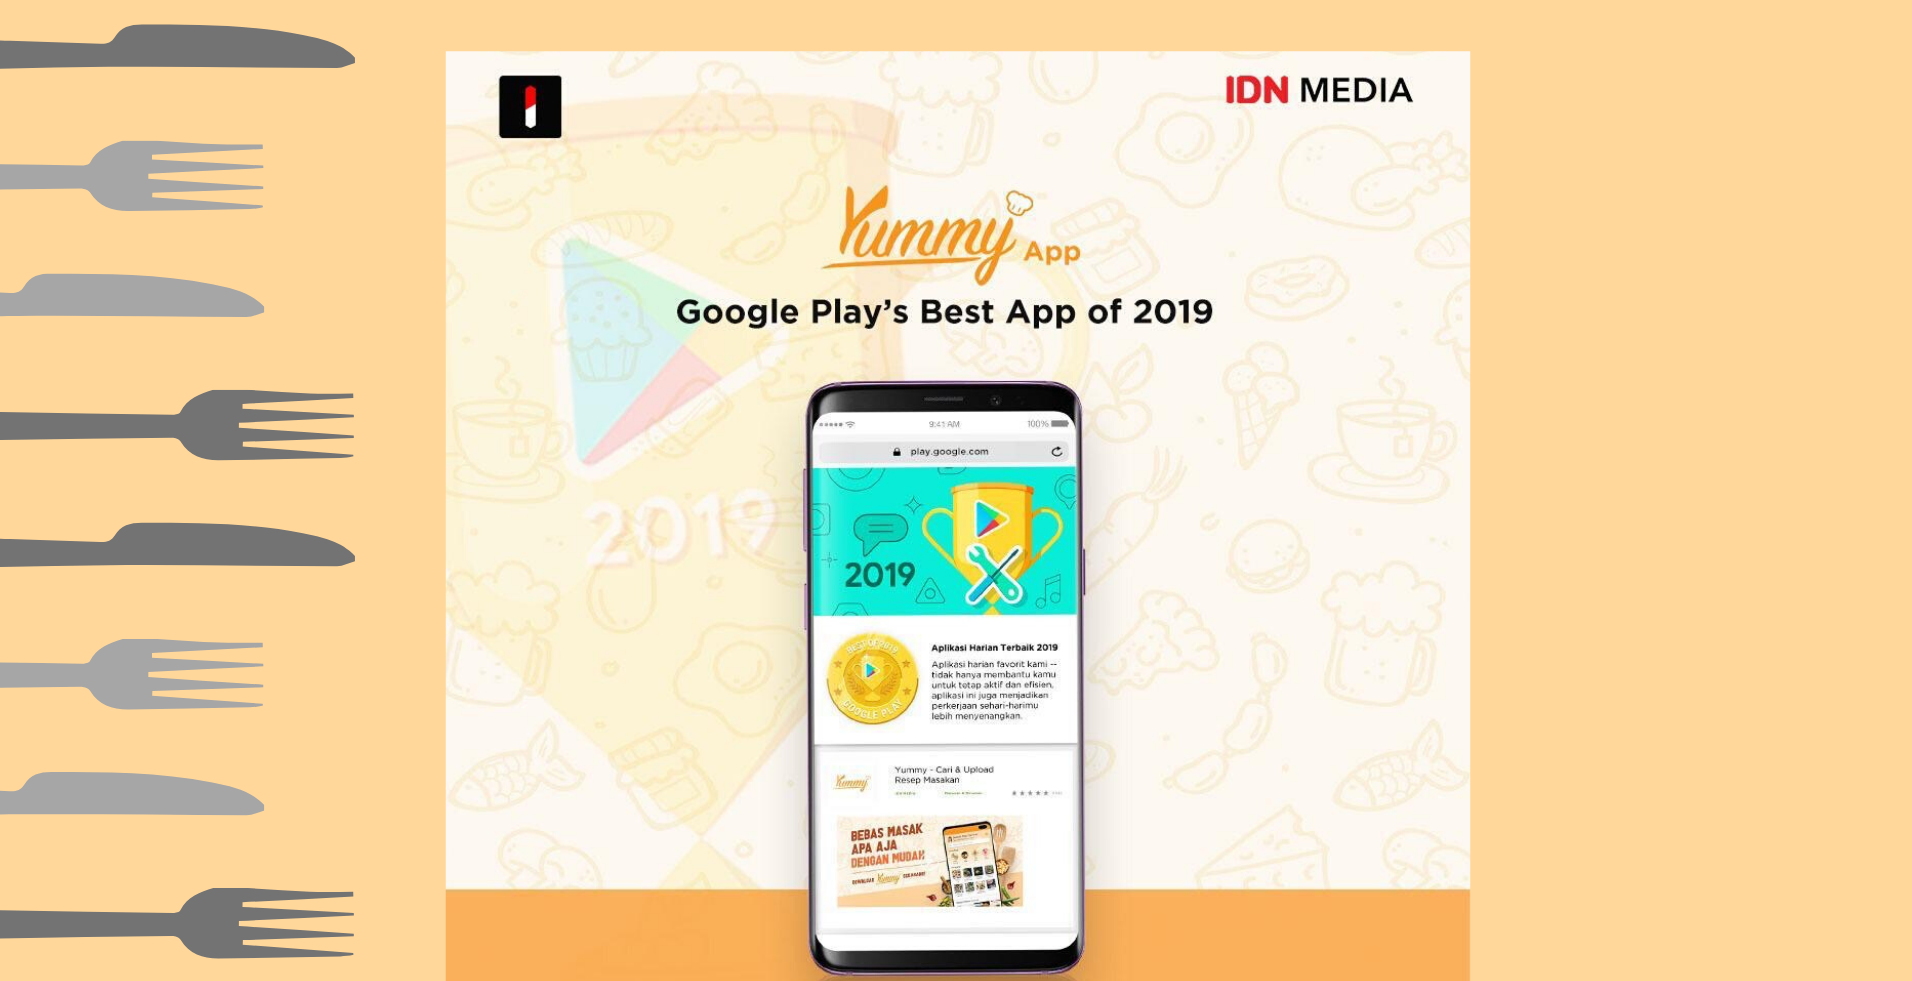 Ending the Year Sweetly, Yummy App Has Been Awarded as Google Play's Best App of 2019